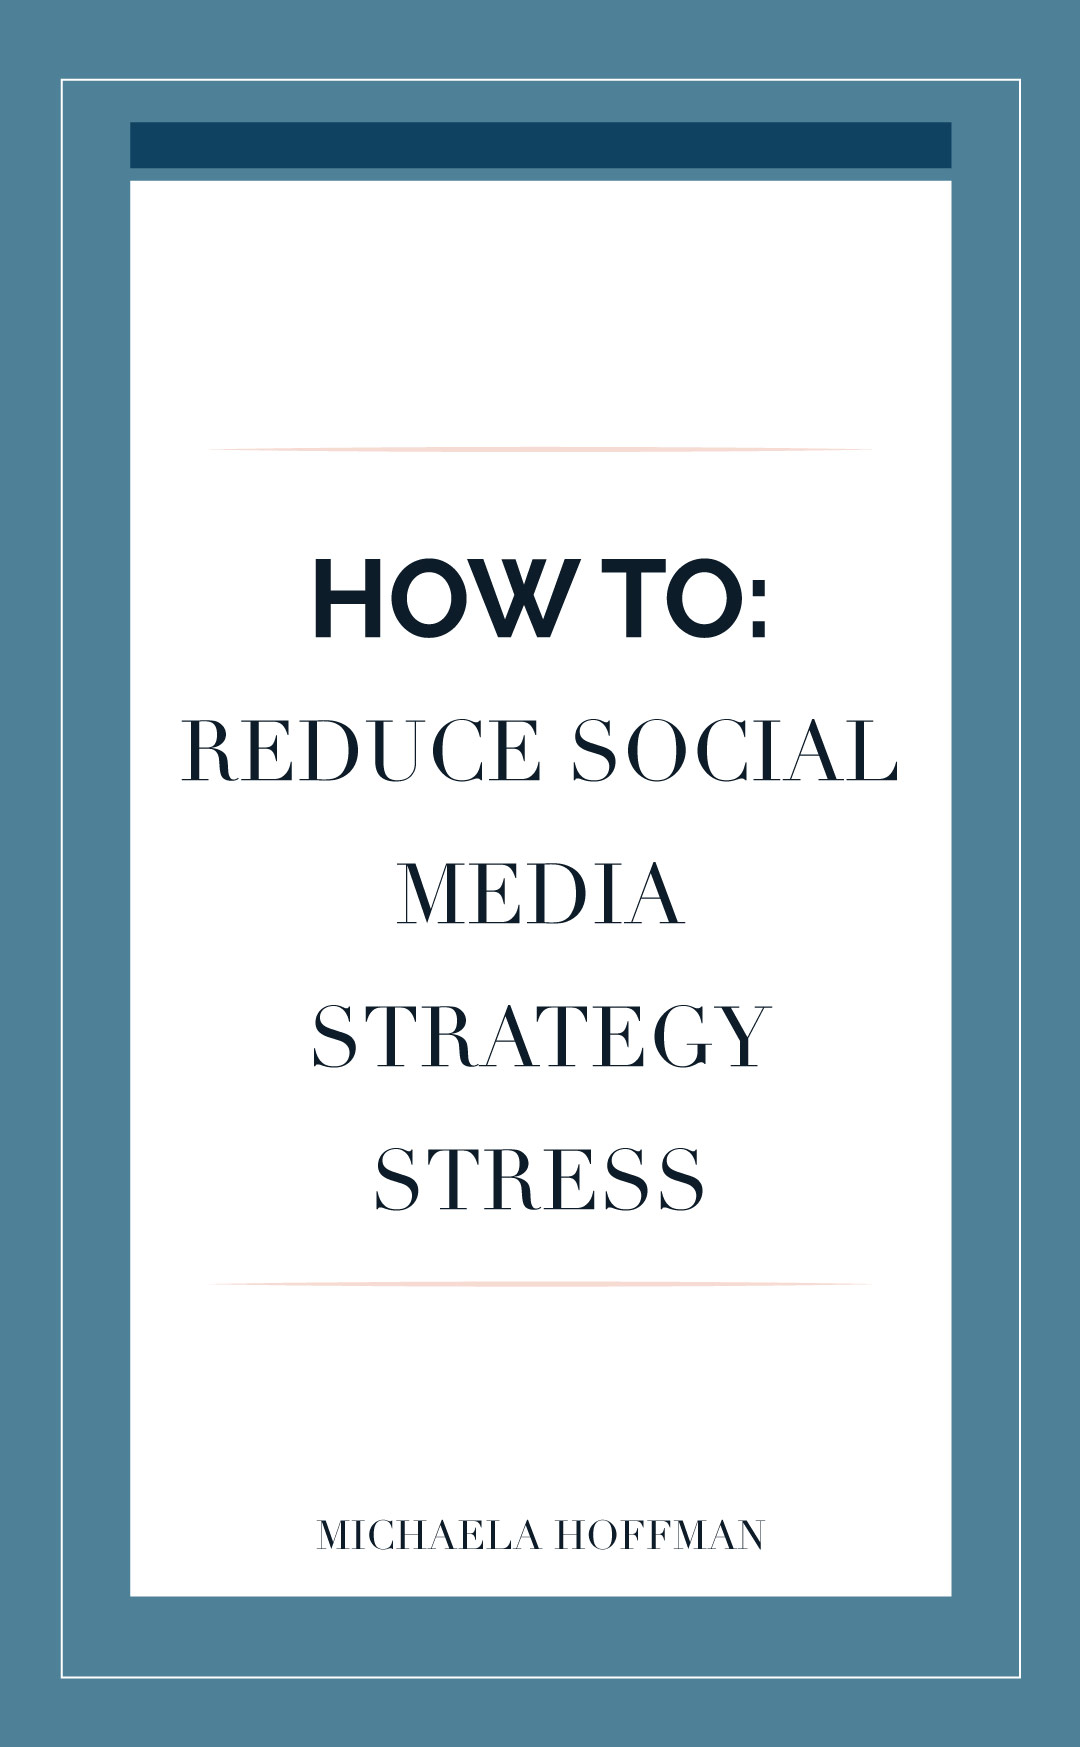 Social media strategy for your business how to create a plan that gives you more freedom and reduces stress